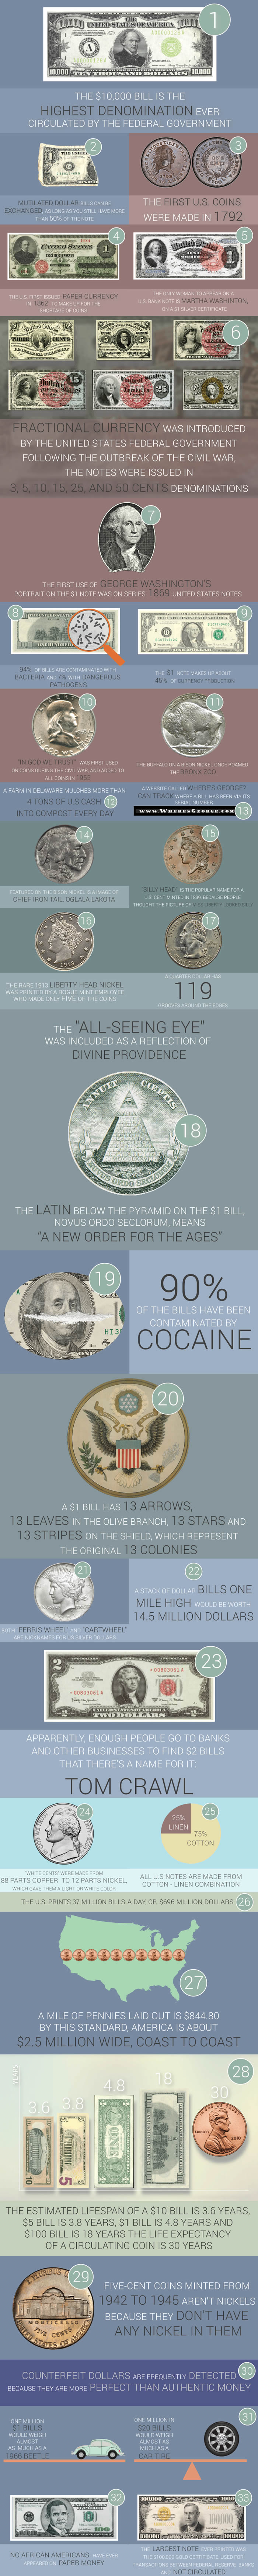 33  Facts You Didn't Know about U.S. Money #Infographic | www.TheHeavyPurse.com